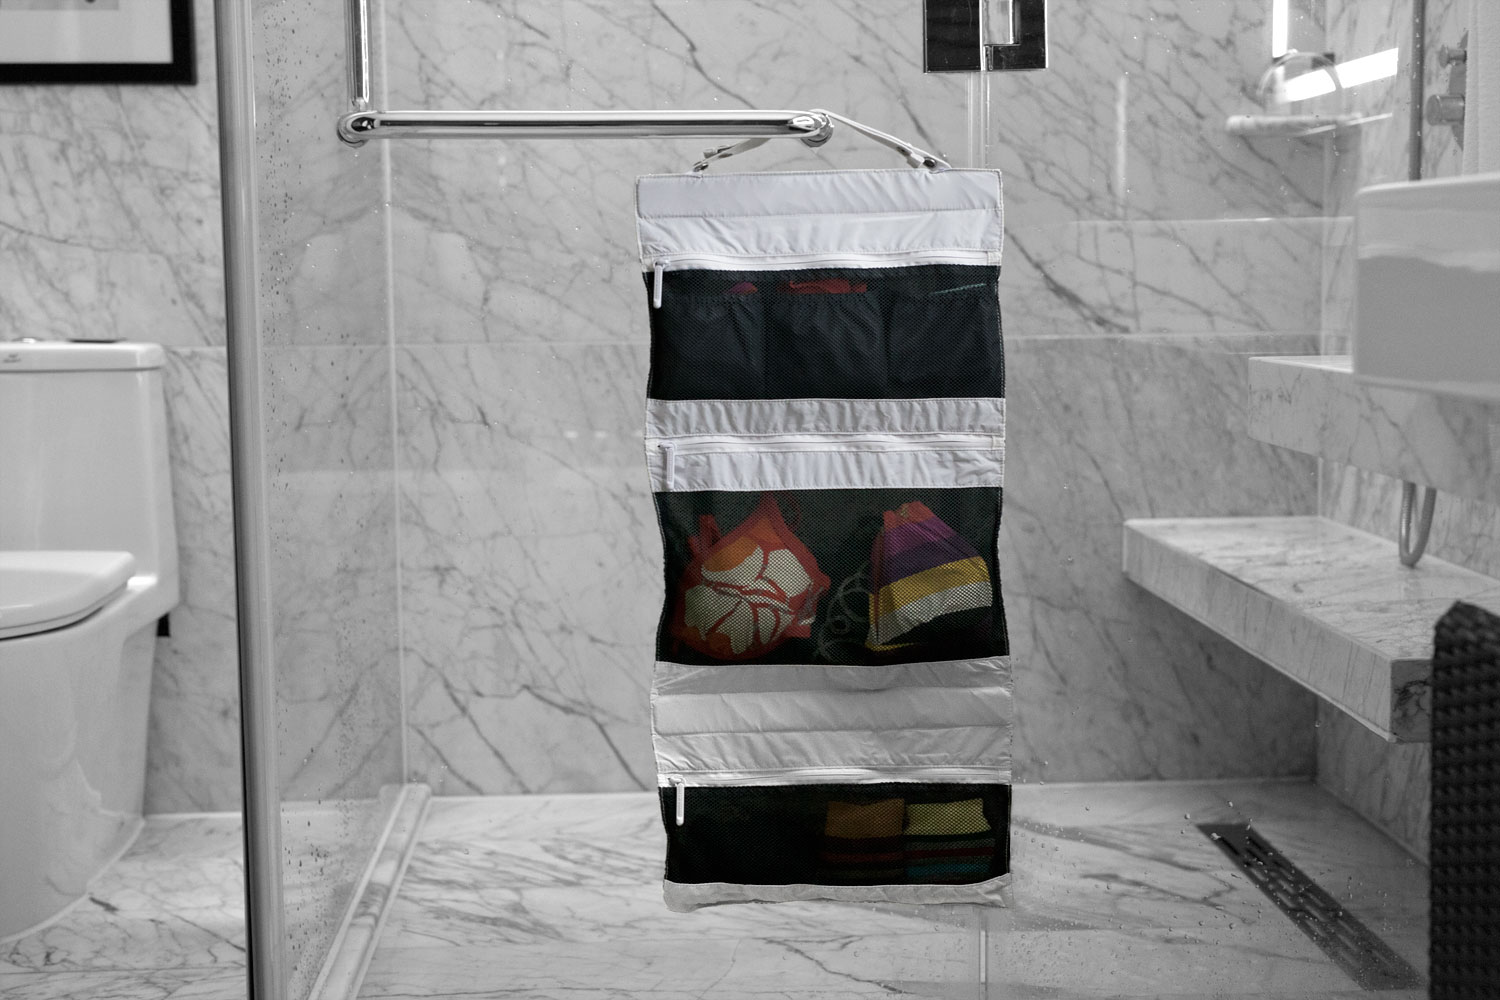 The organizer can be hung in a bathroom, closet or almost anywhere